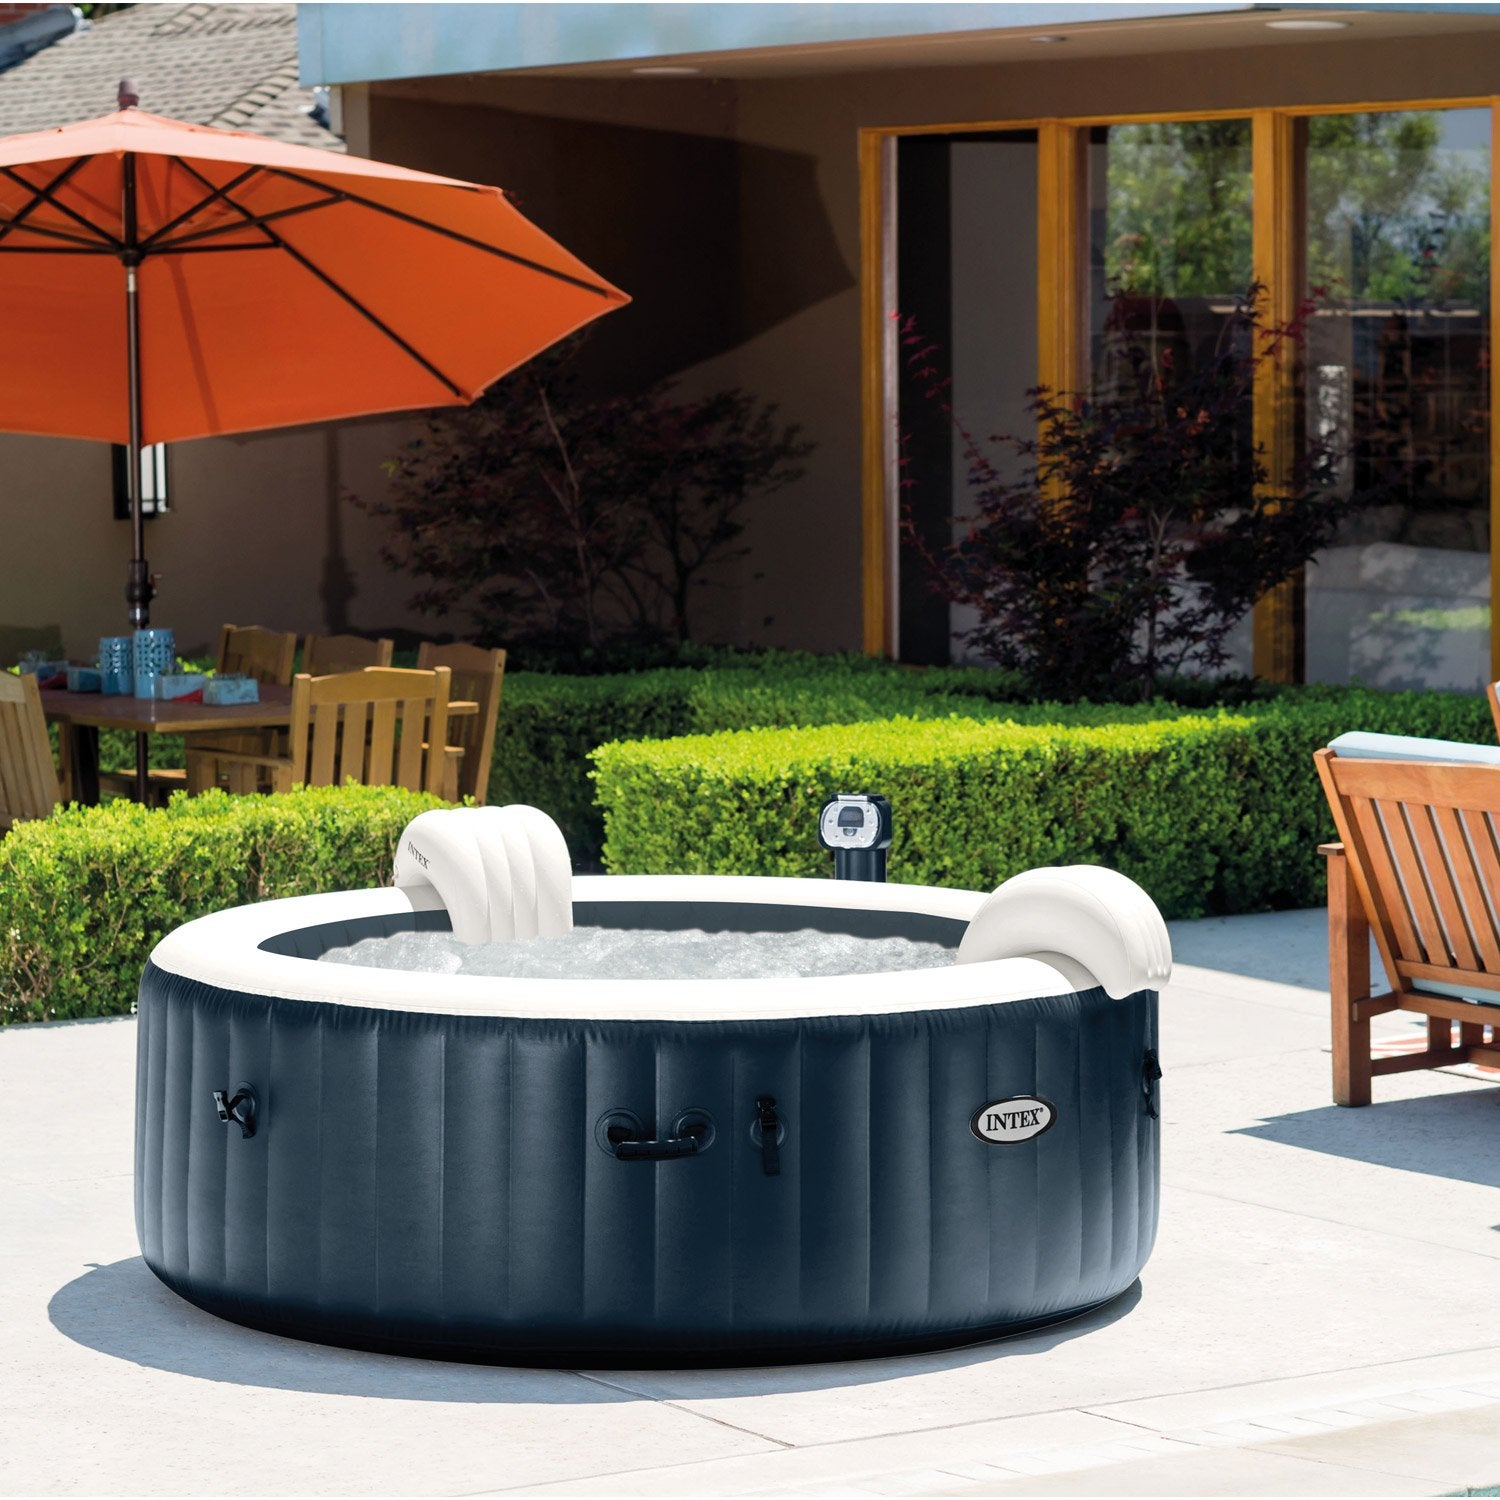 Assises Led Spa Rond6 Intex Places Gonflable Pure rBdexCo